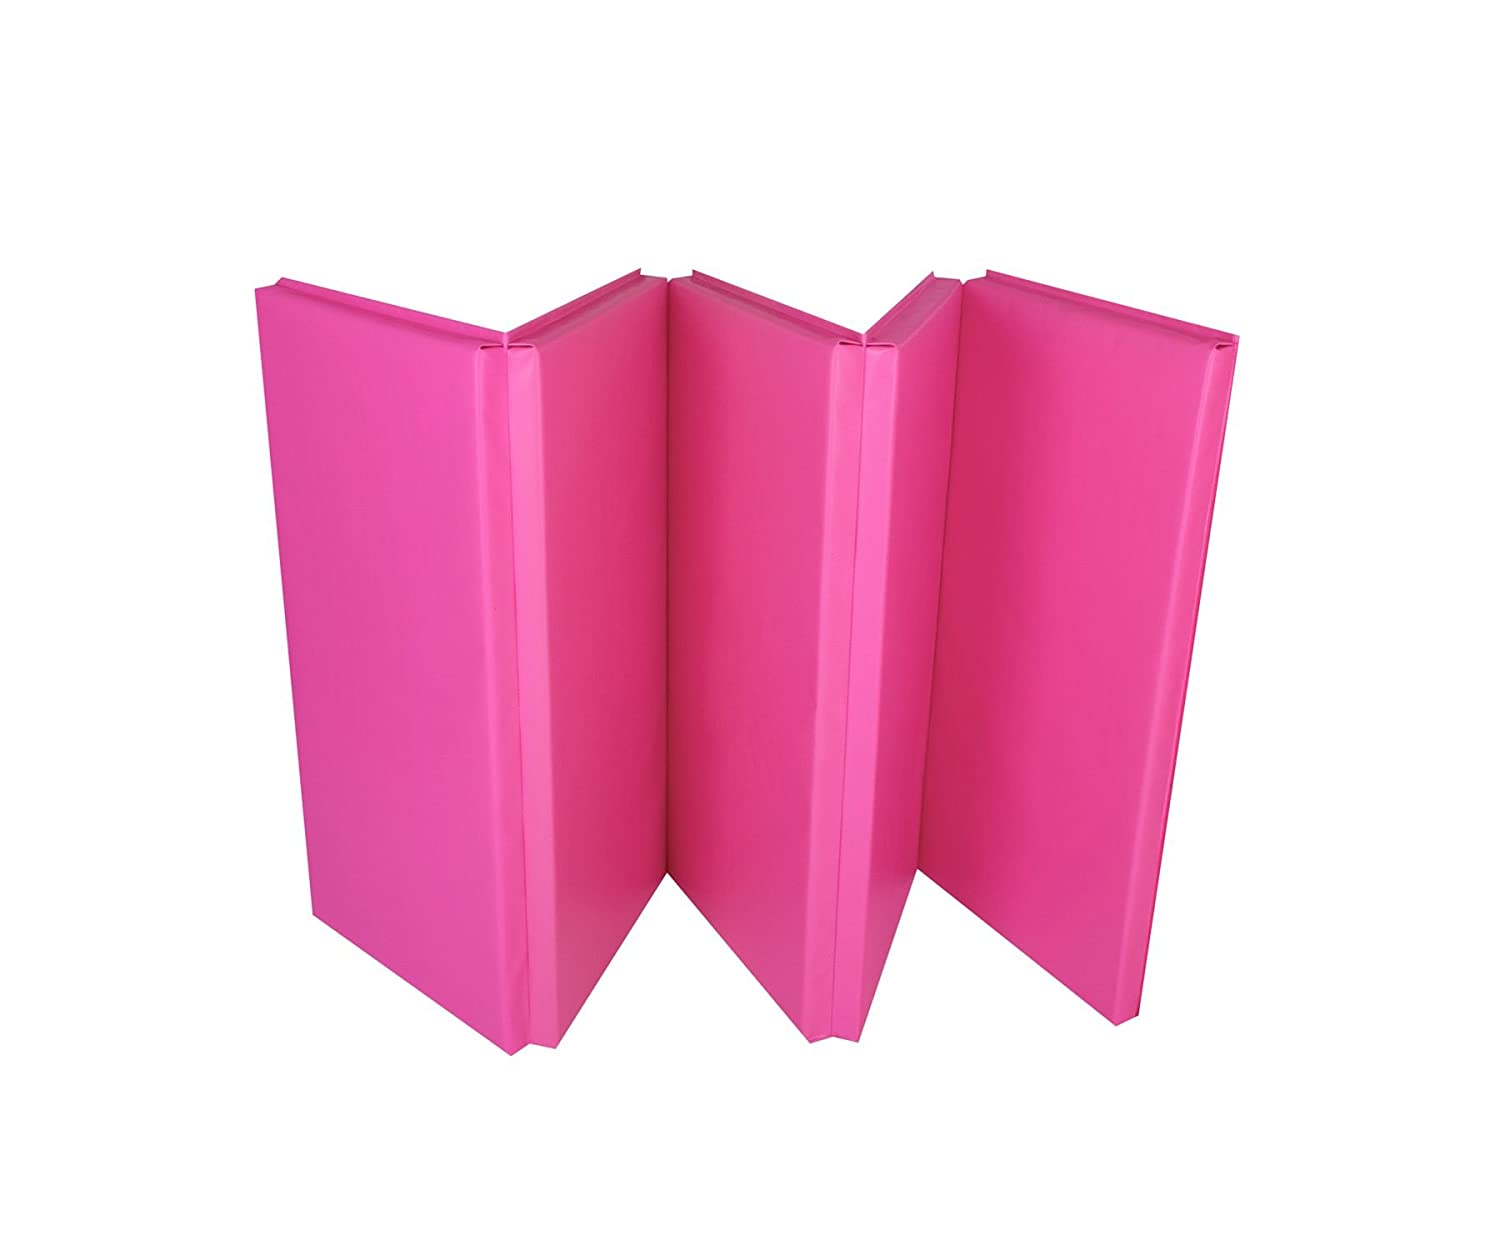 triangle foam pink gymnastics product folding wedge mat detail tumbling high training mats incline quality